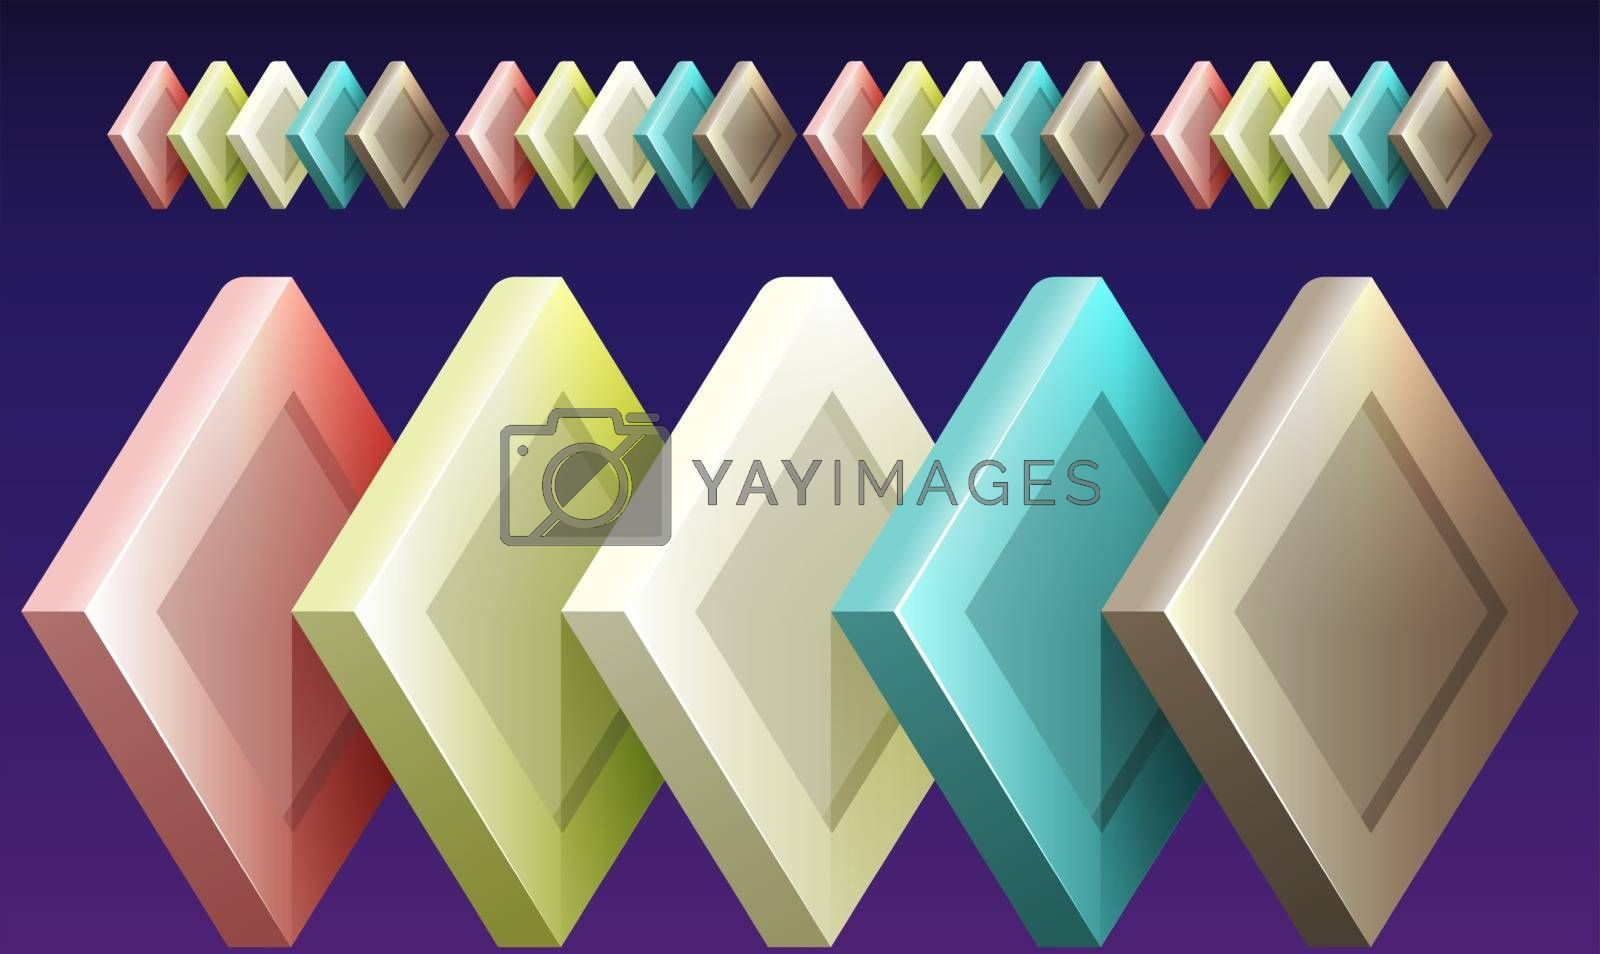 Royalty free image of digital textile design of diamond boxes on abstract background by aanavcreationsplus